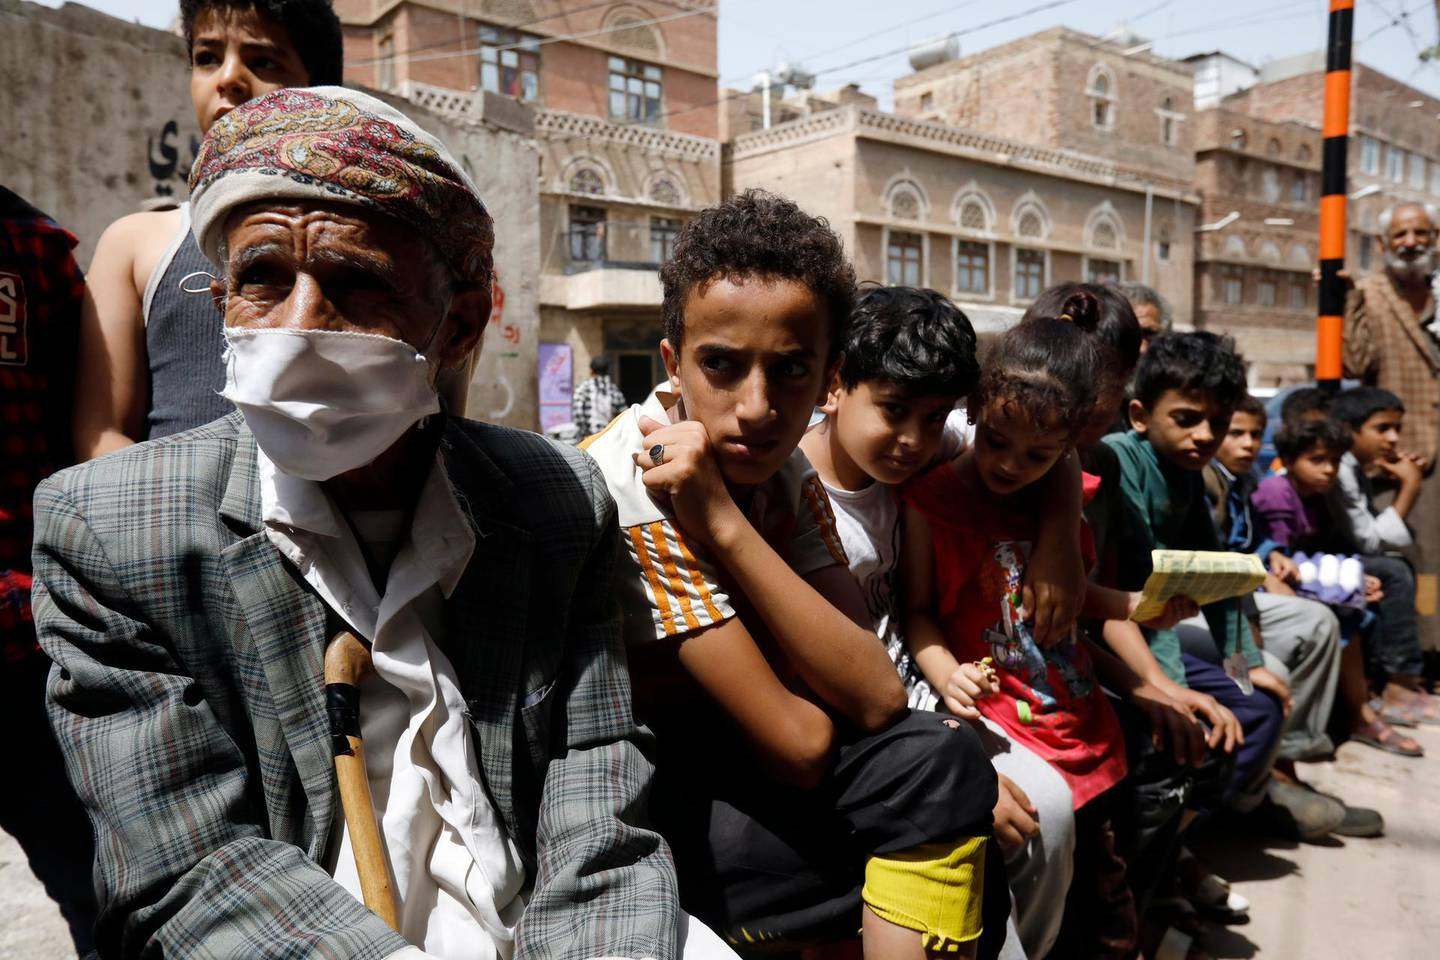 epa08537056 Yemenis wait to get free food rations from a charity group in Sana'a, Yemen, 09 July 2020. According to reports, the United Nations has warned that war-ridden Yemen is again on the brink of famine because of a lack of donor funds as 80 percent of the Arab country's 29 million-population dependent on humanitarian aid. Yemen is experiencing the world's worst humanitarian crisis, driven by more than five years of war.  EPA/YAHYA ARHAB